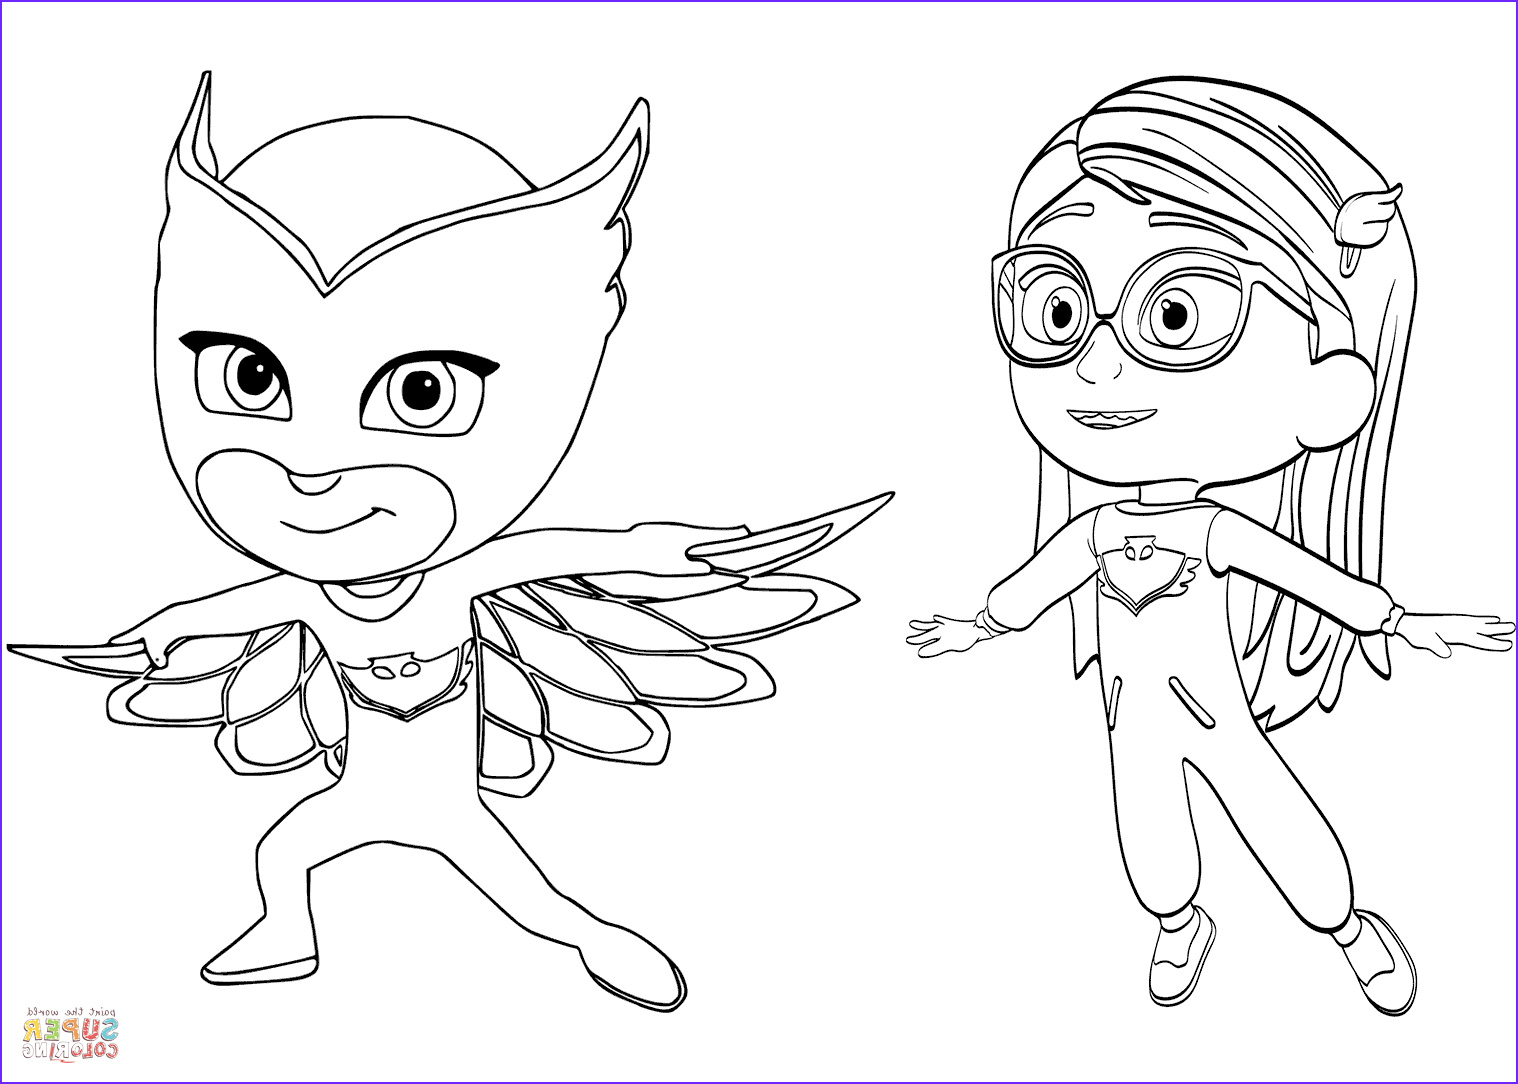 Pj Masks Coloring Elegant Photography Pajama Hero Amaya is Owlette From Pj Masks Coloring Page